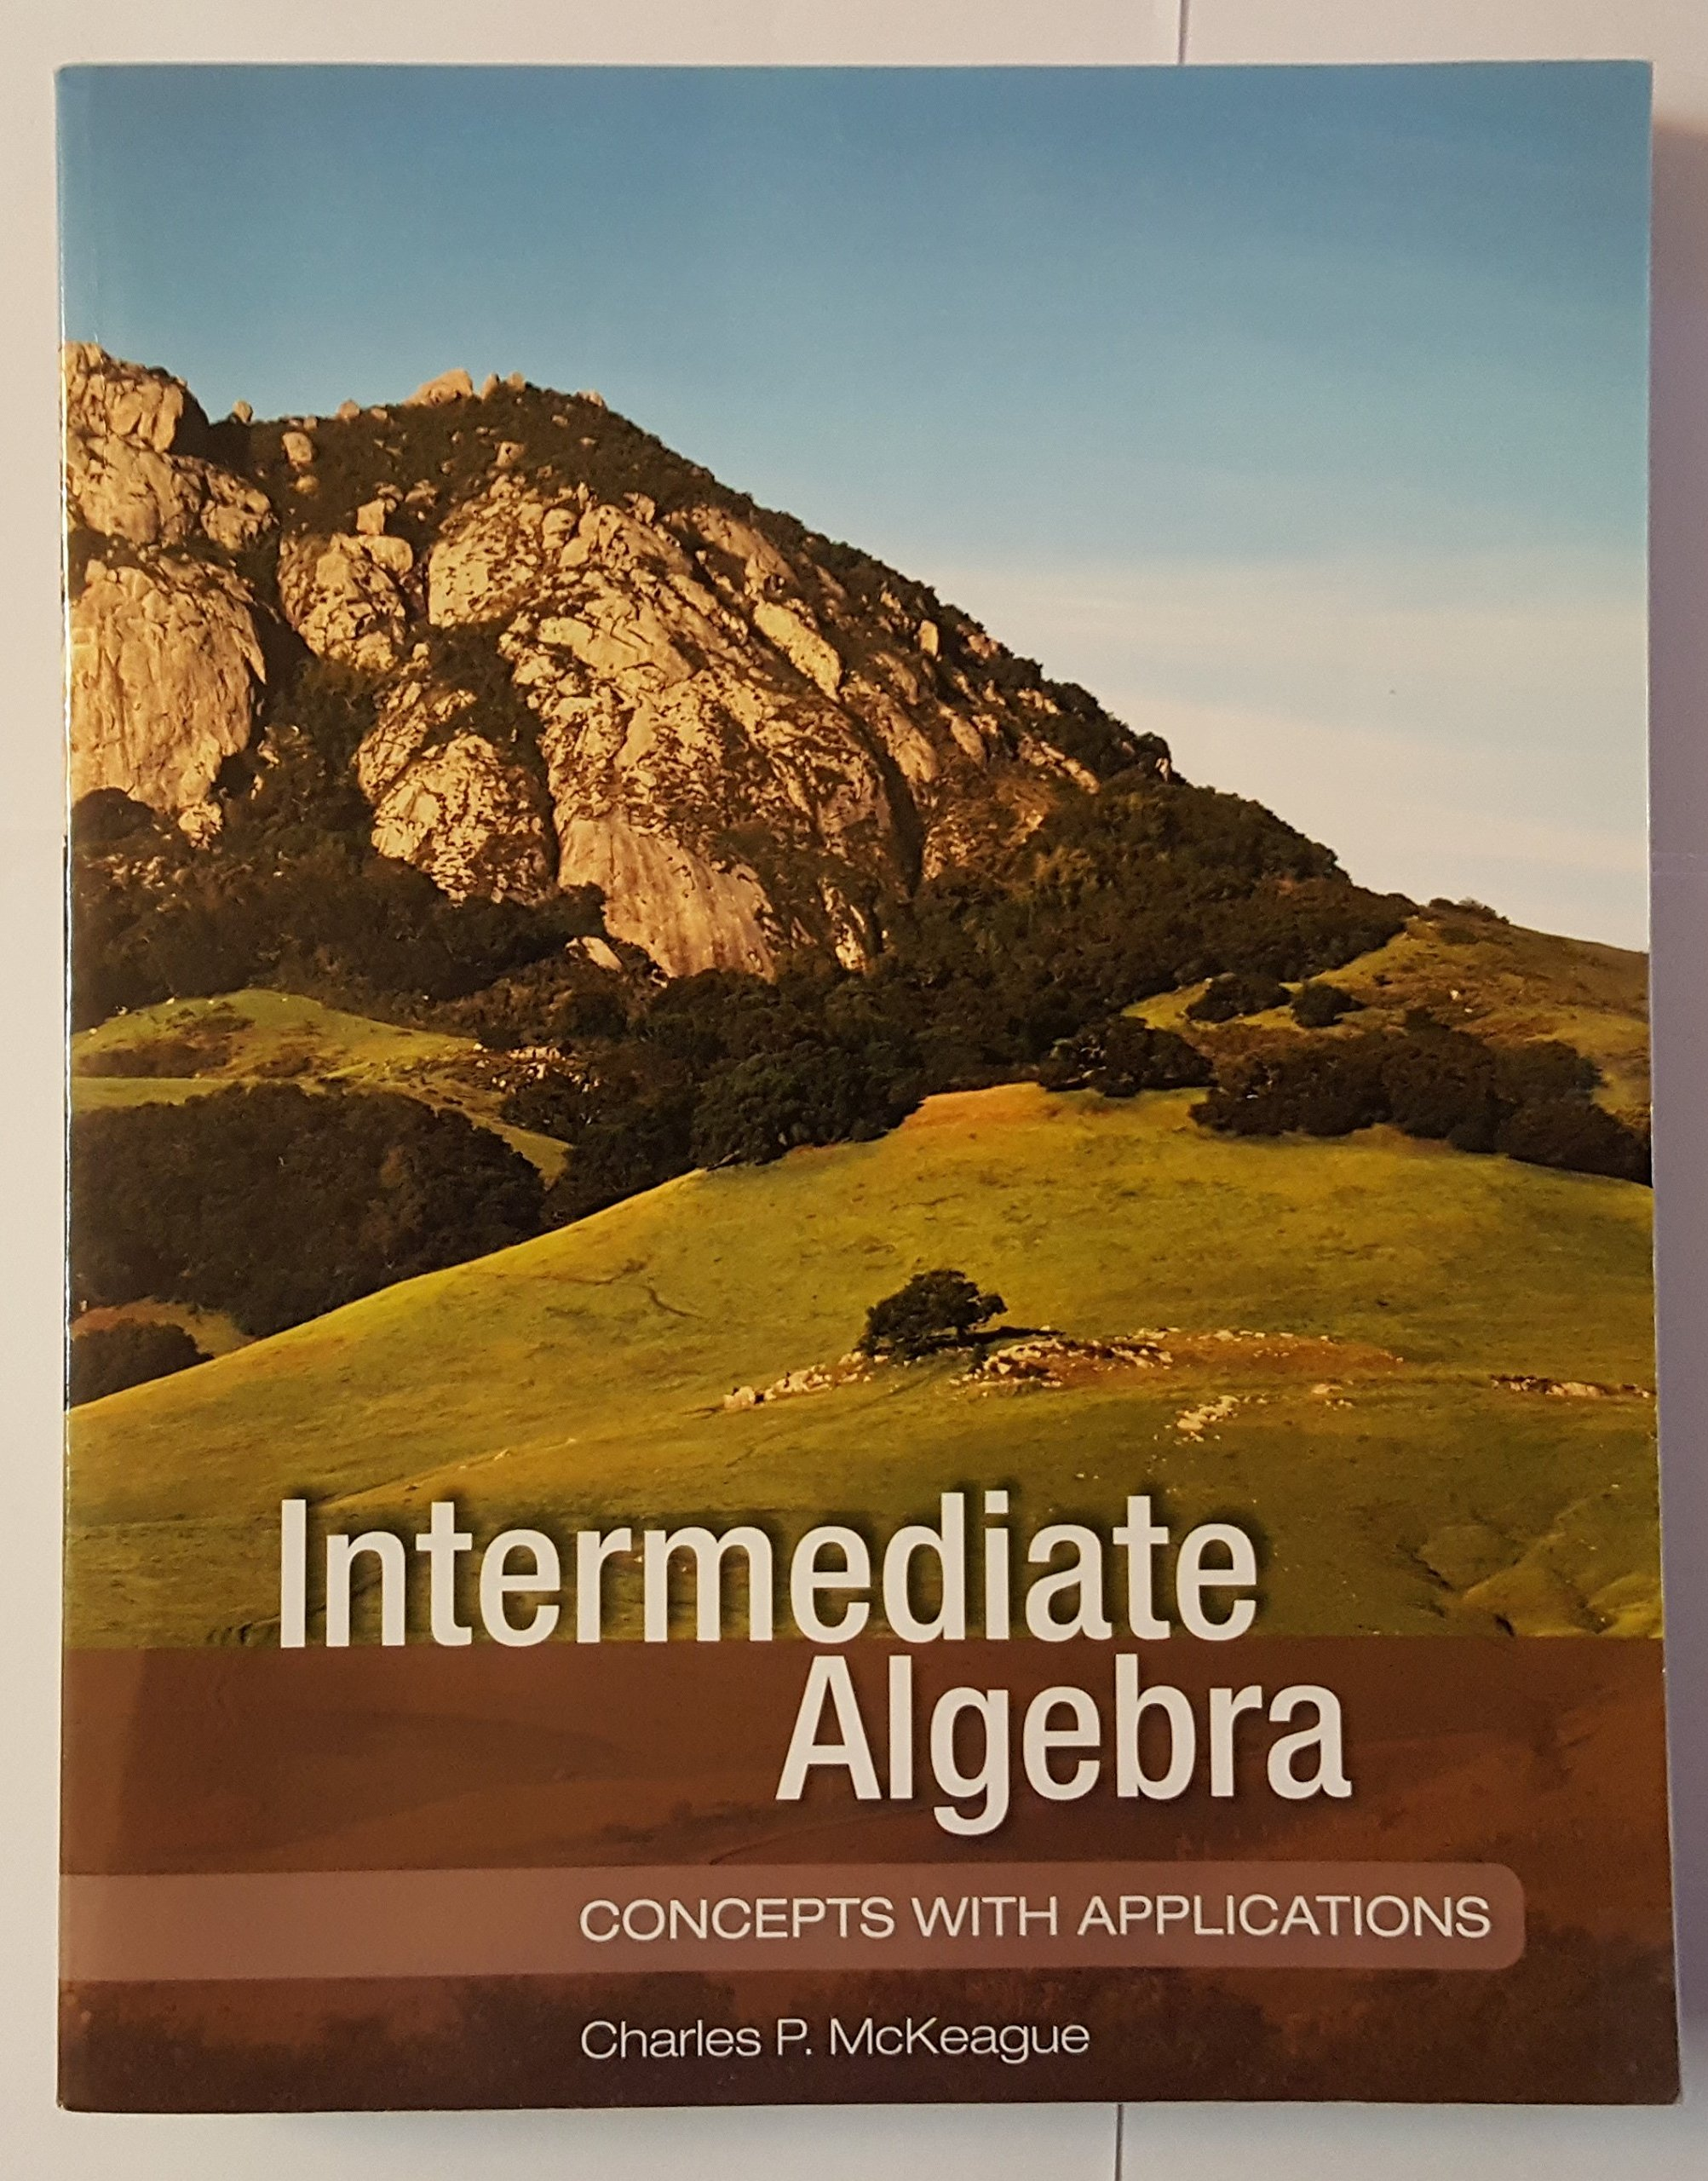 Intermediate algebra charles p mckeague 9781936368068 amazon intermediate algebra charles p mckeague 9781936368068 amazon books fandeluxe Images